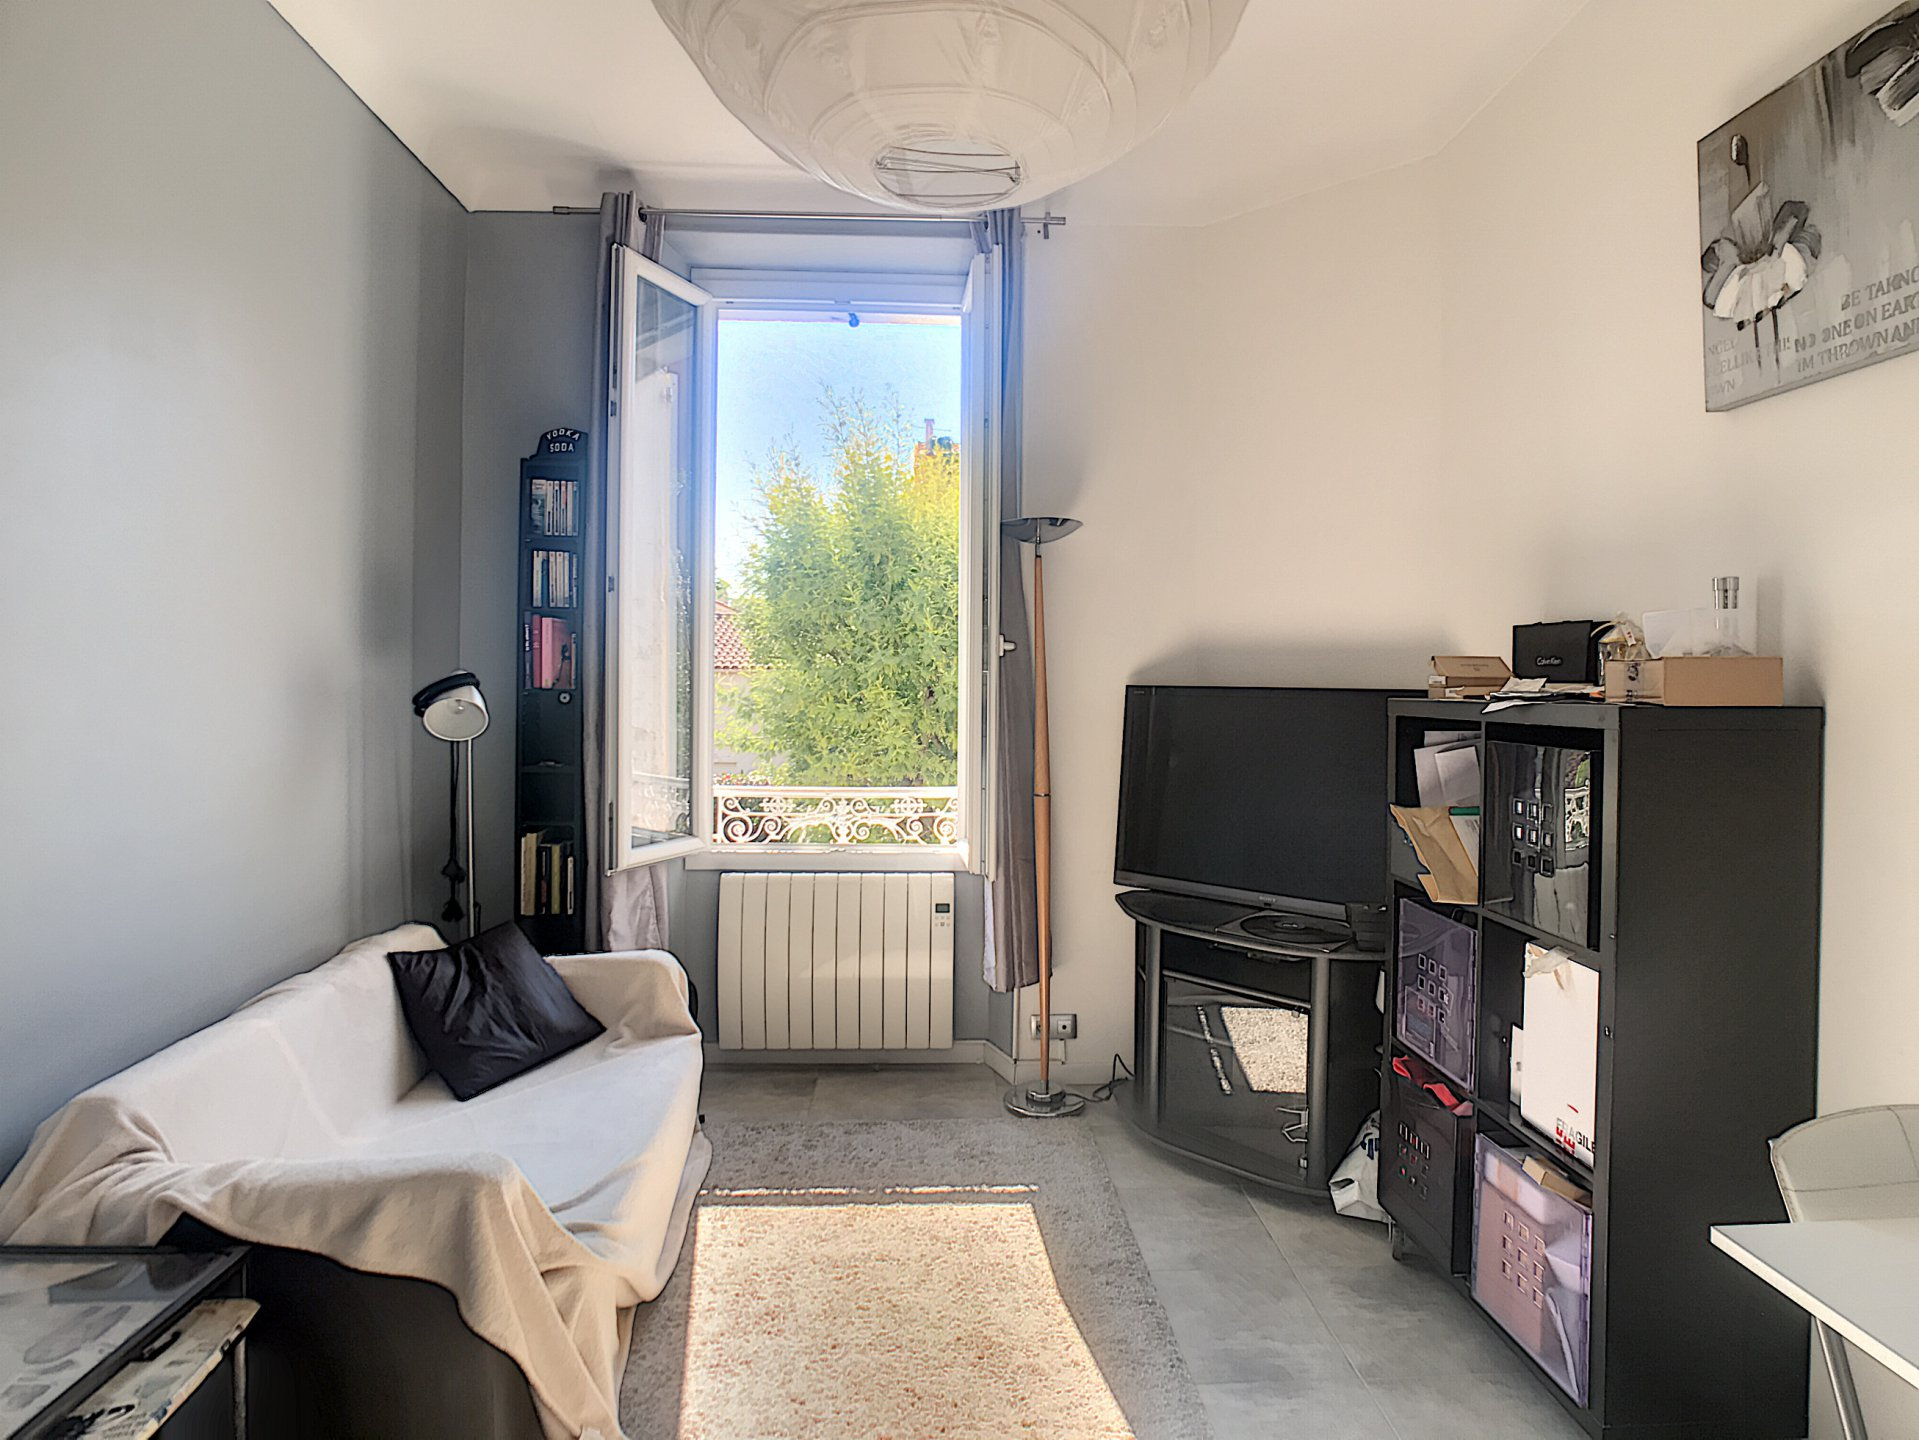 Cannes Stanislas, 1 bedroom of 28 sqm²